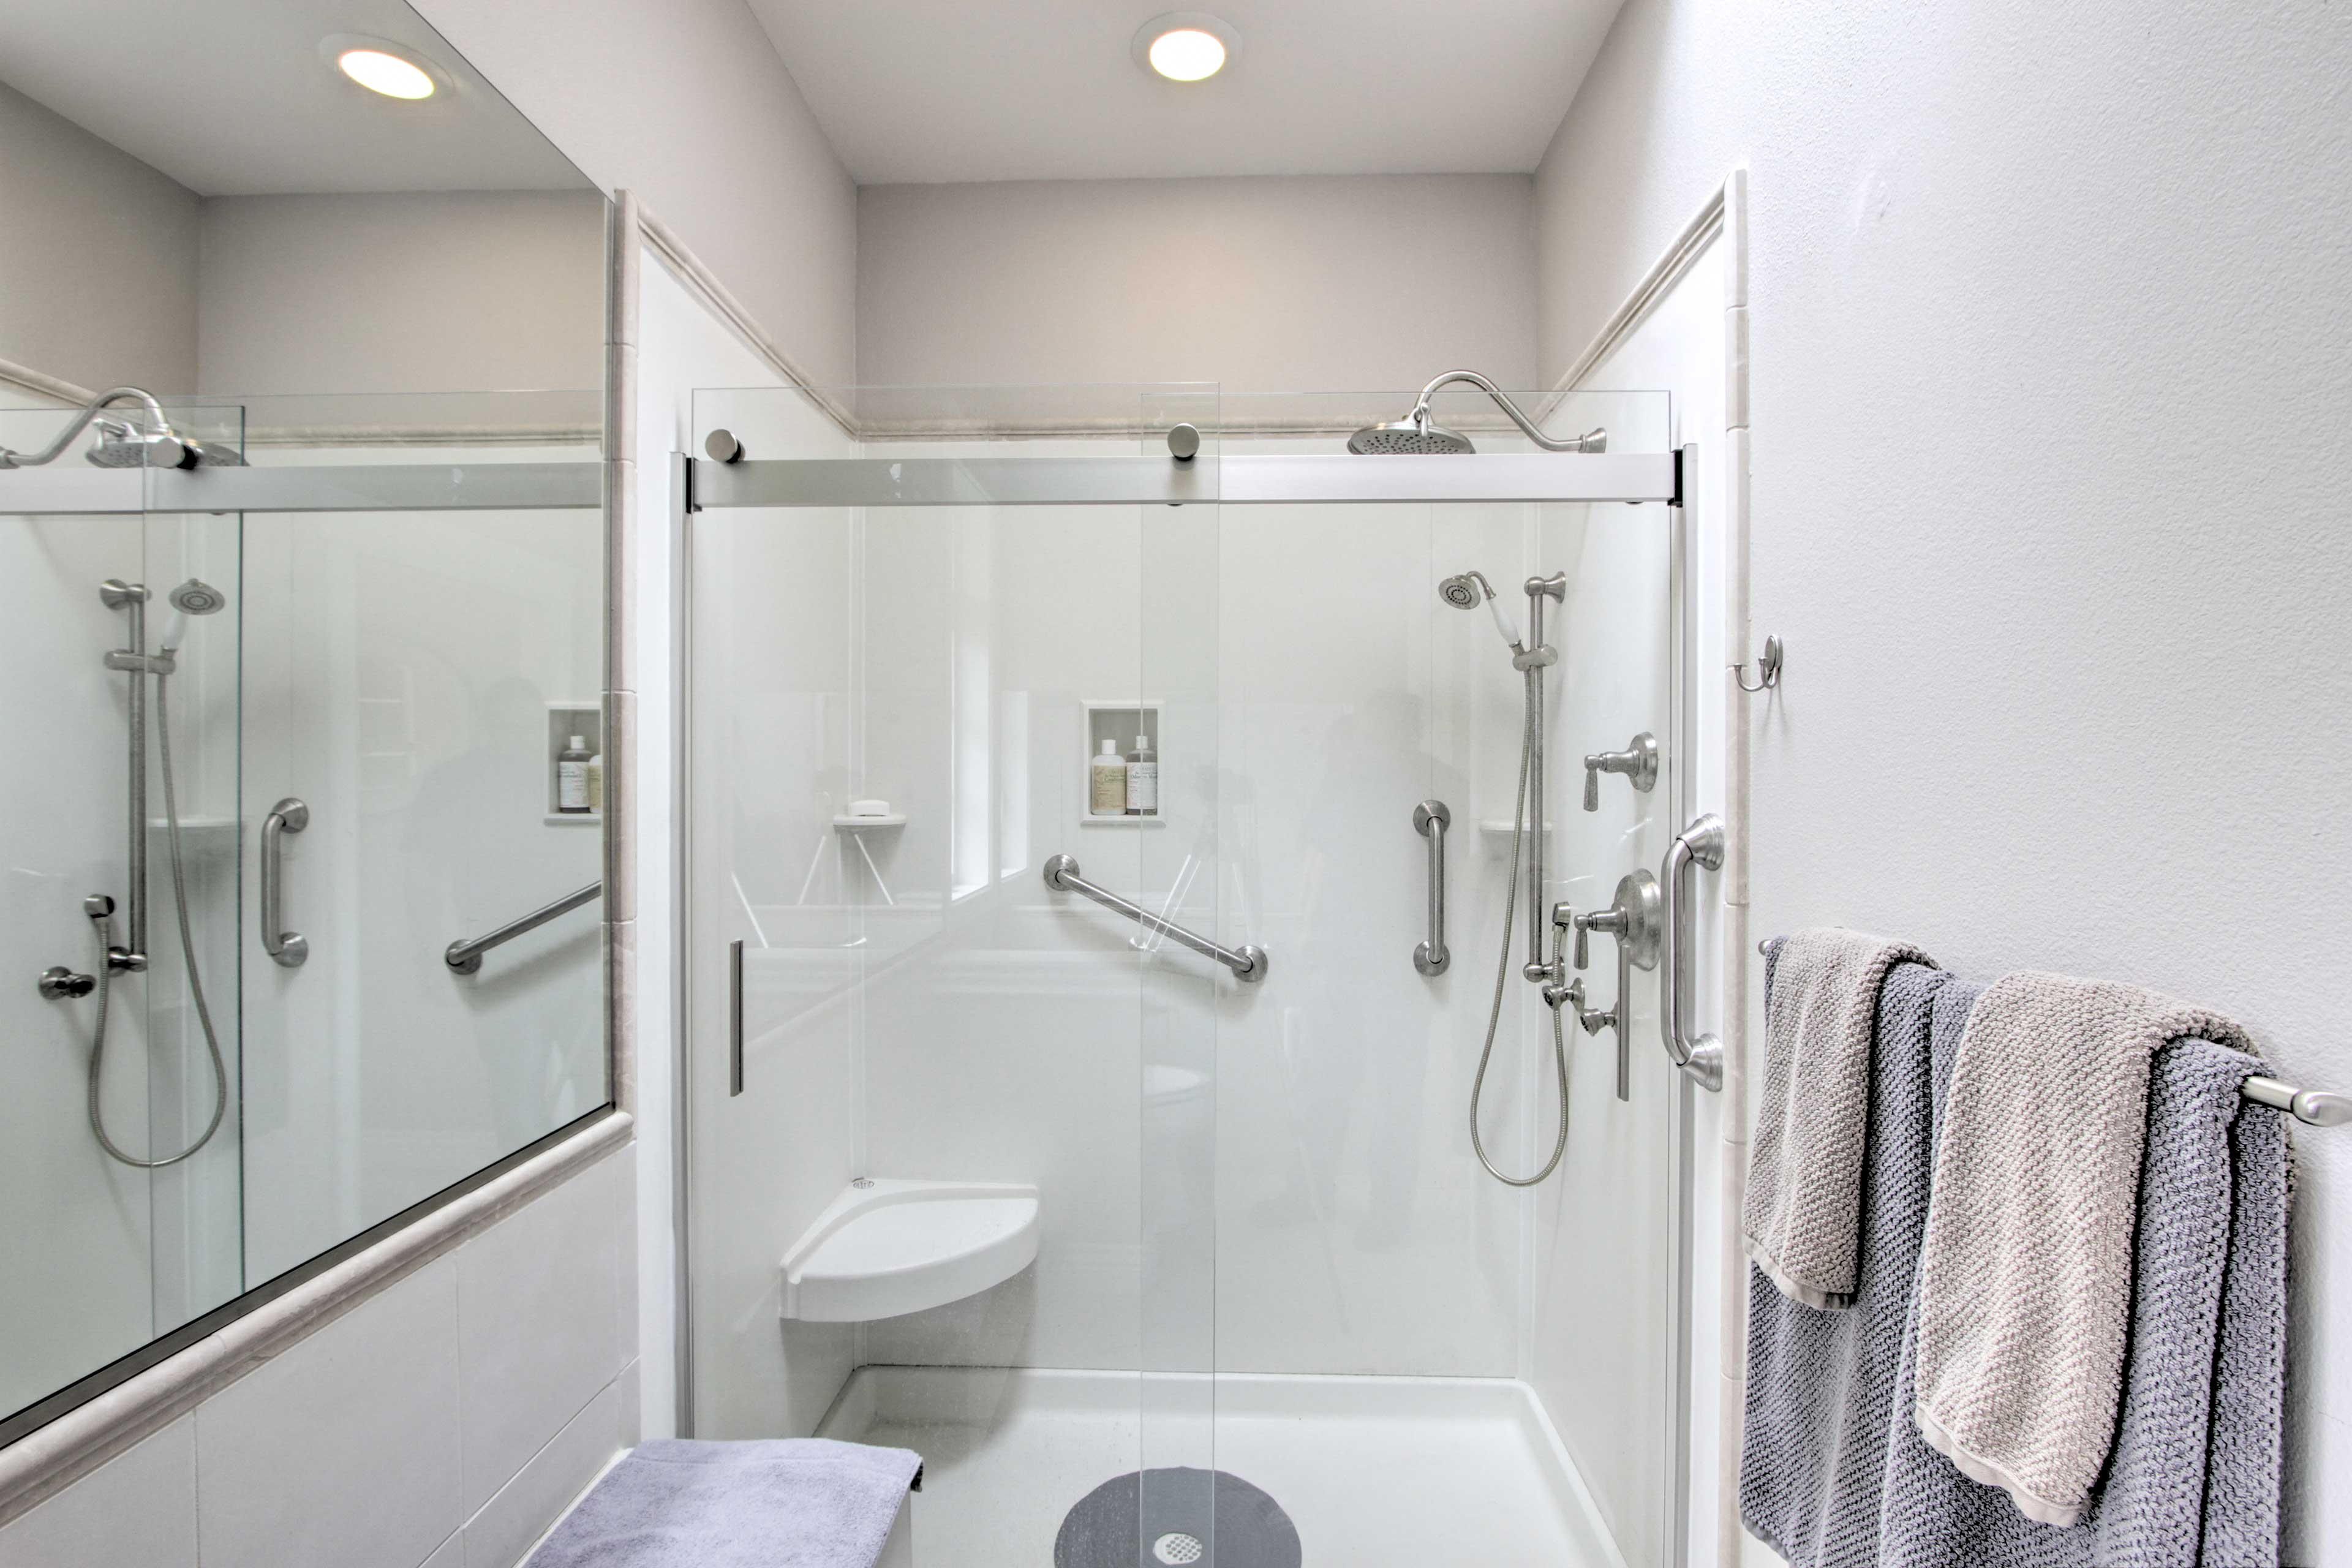 Both showers have grab rails for safety.